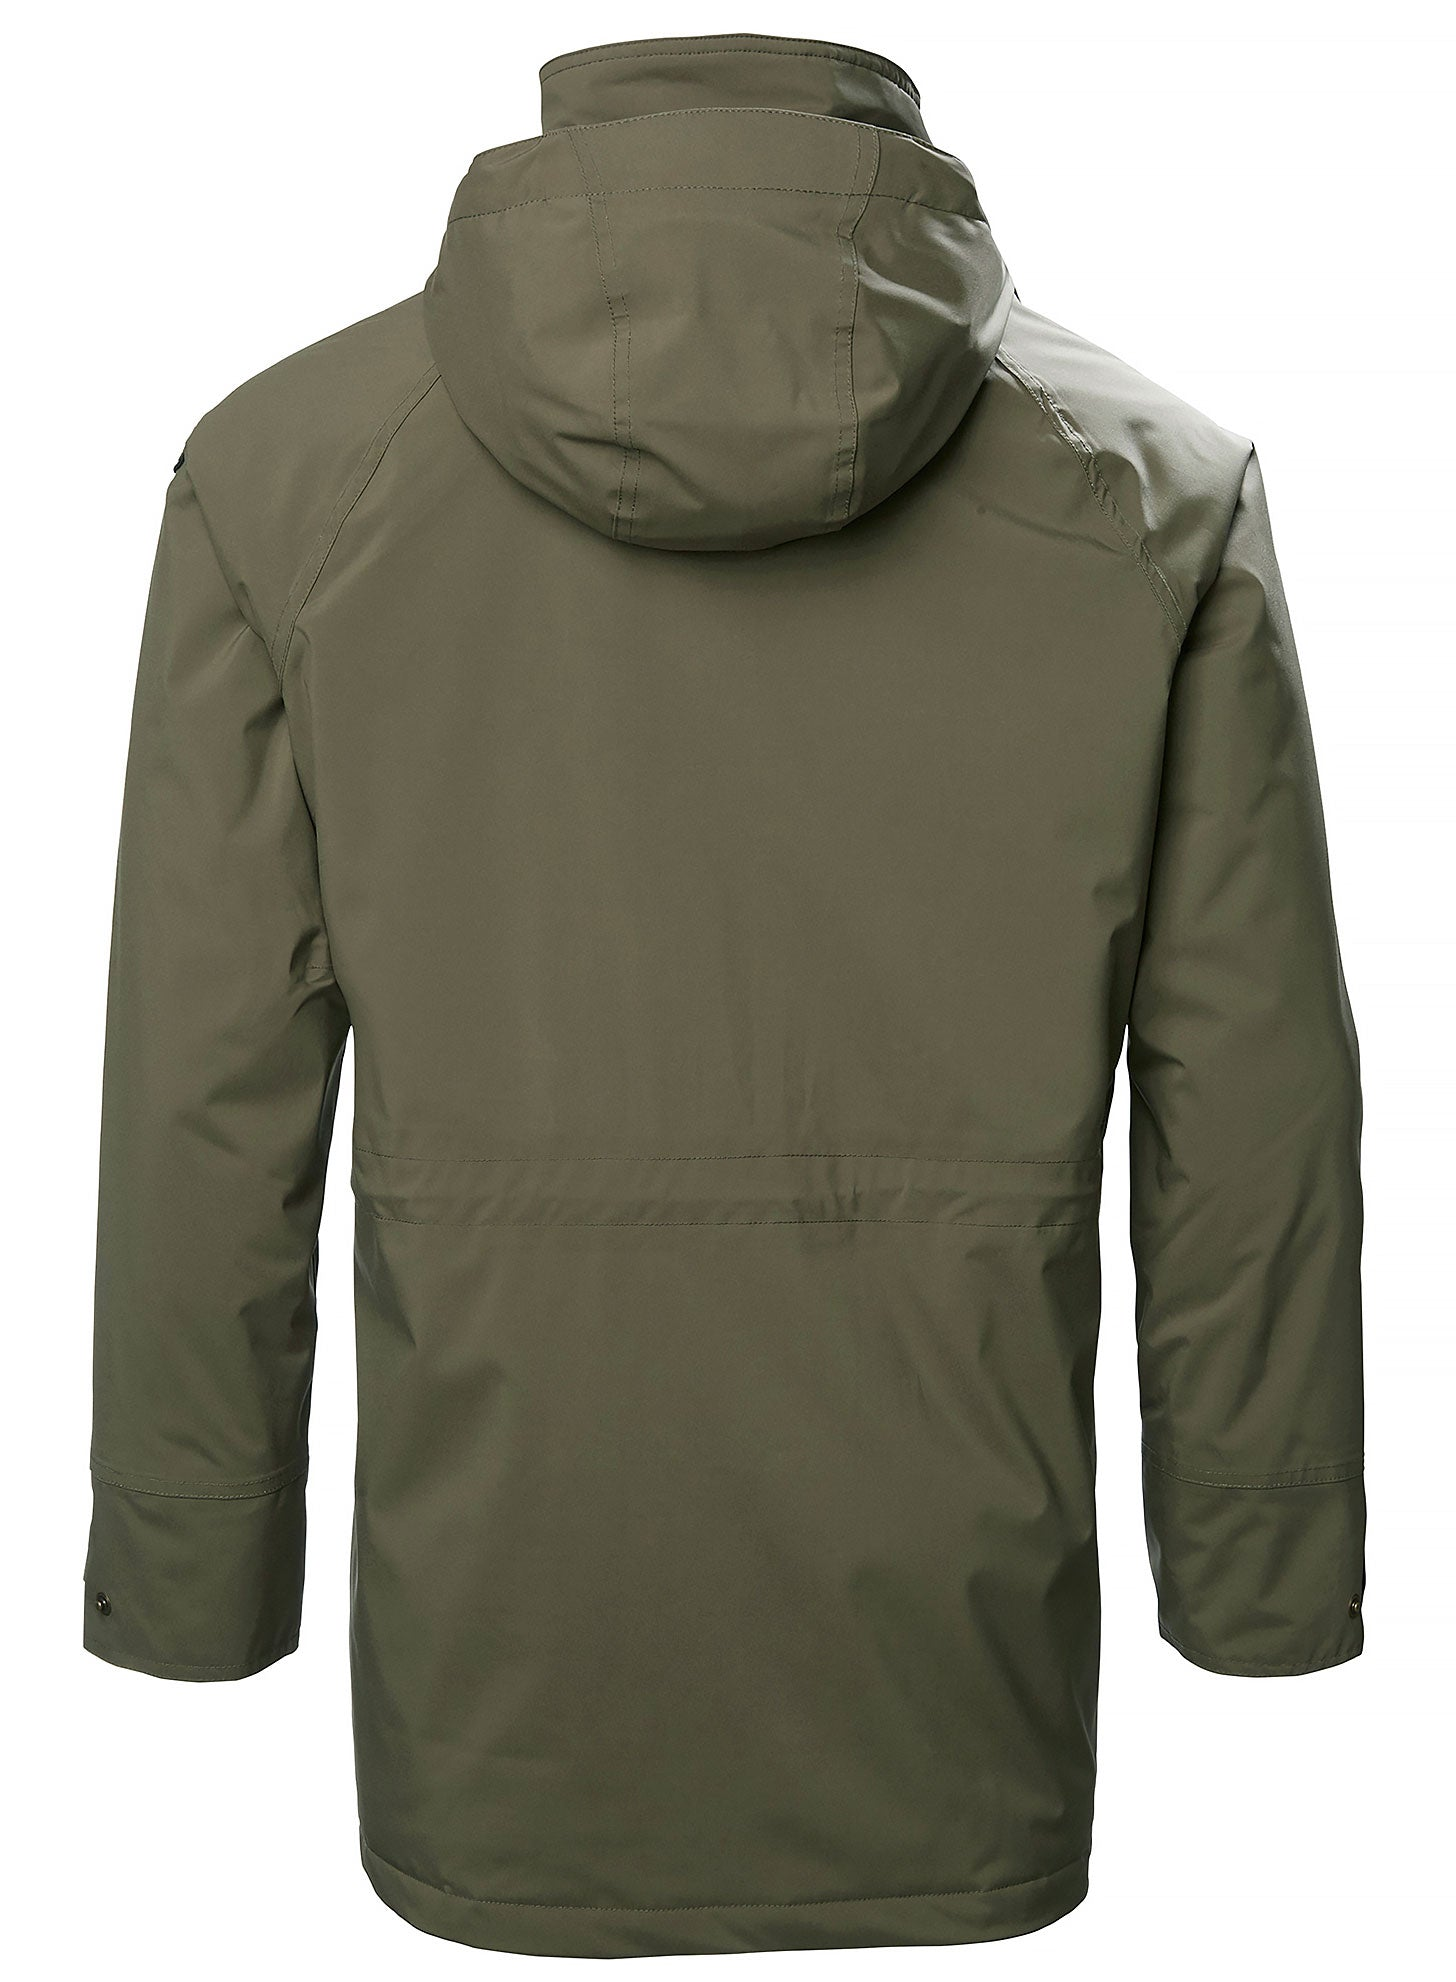 Back view Musto Primaloft waterproof Jacket